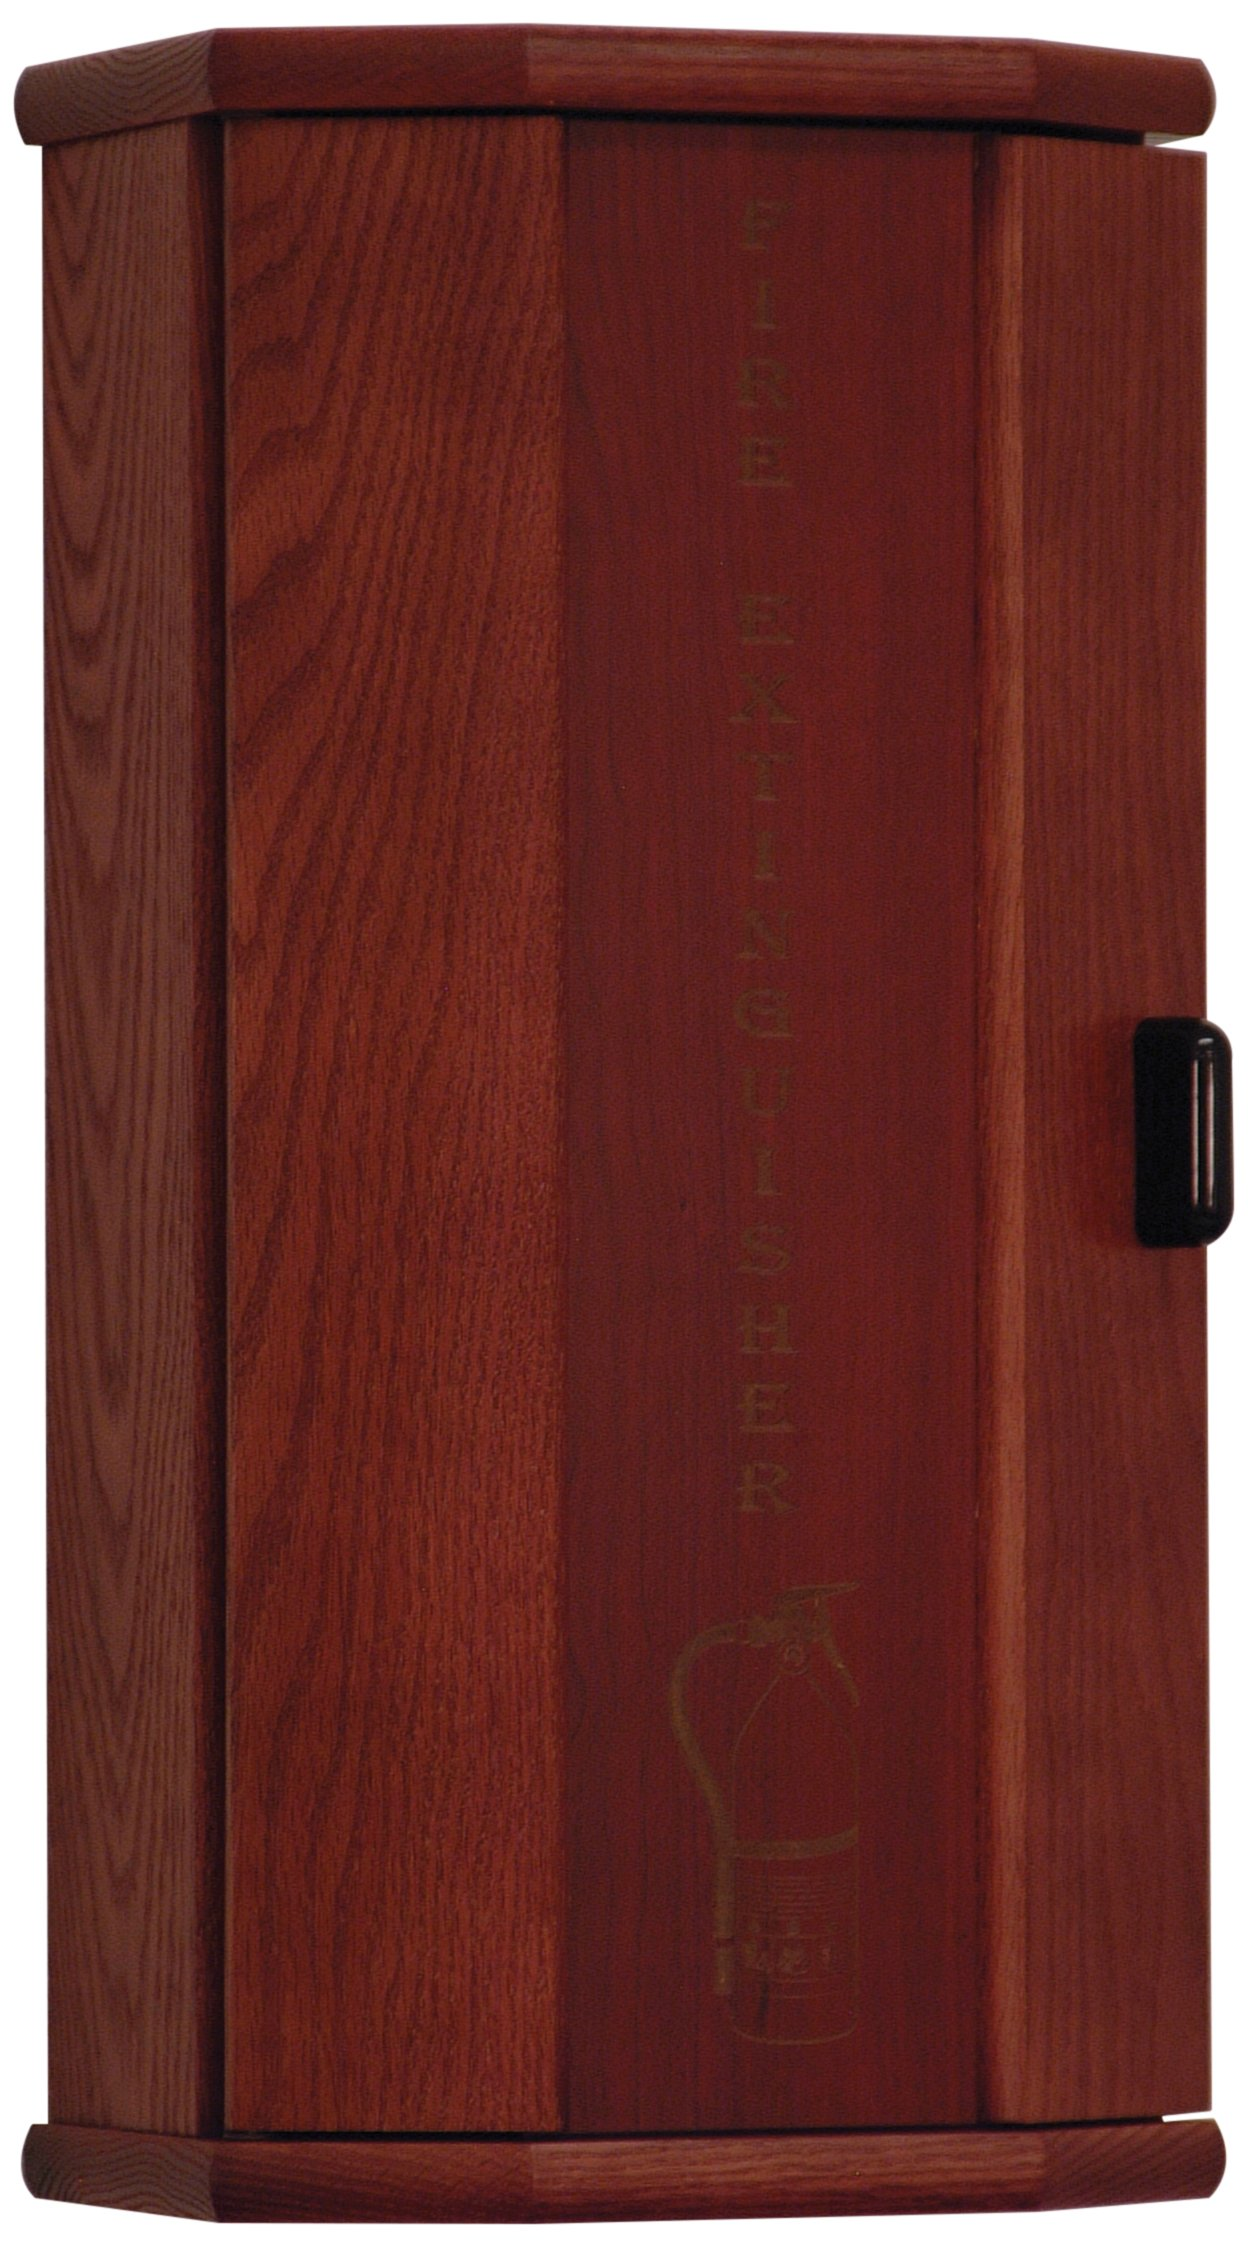 Wooden Mallet Fire Extinguisher Cabinet, 5-Pound, Mahogany/Engraved